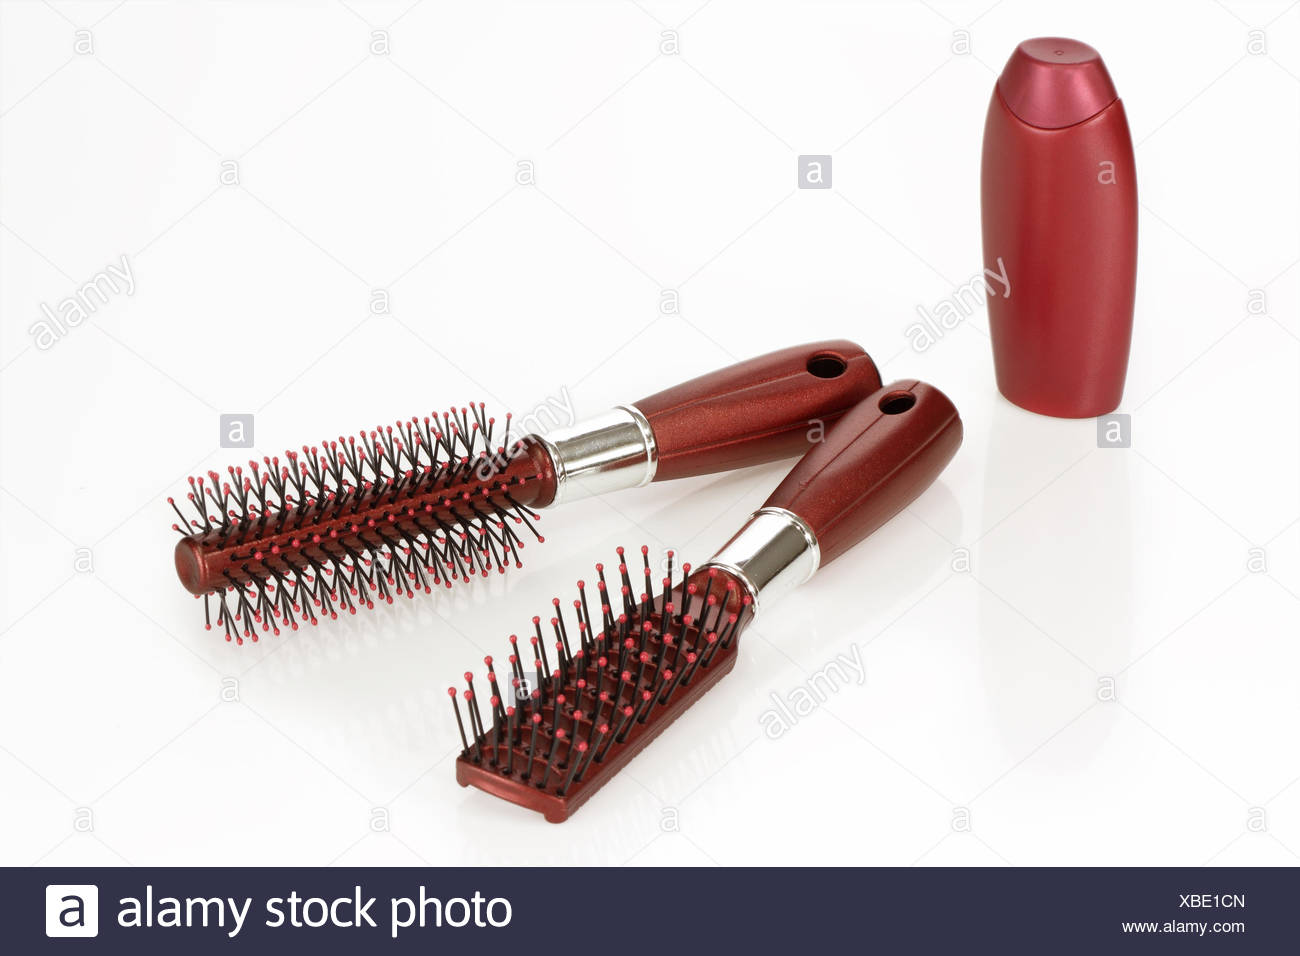 hair care products - Stock Image